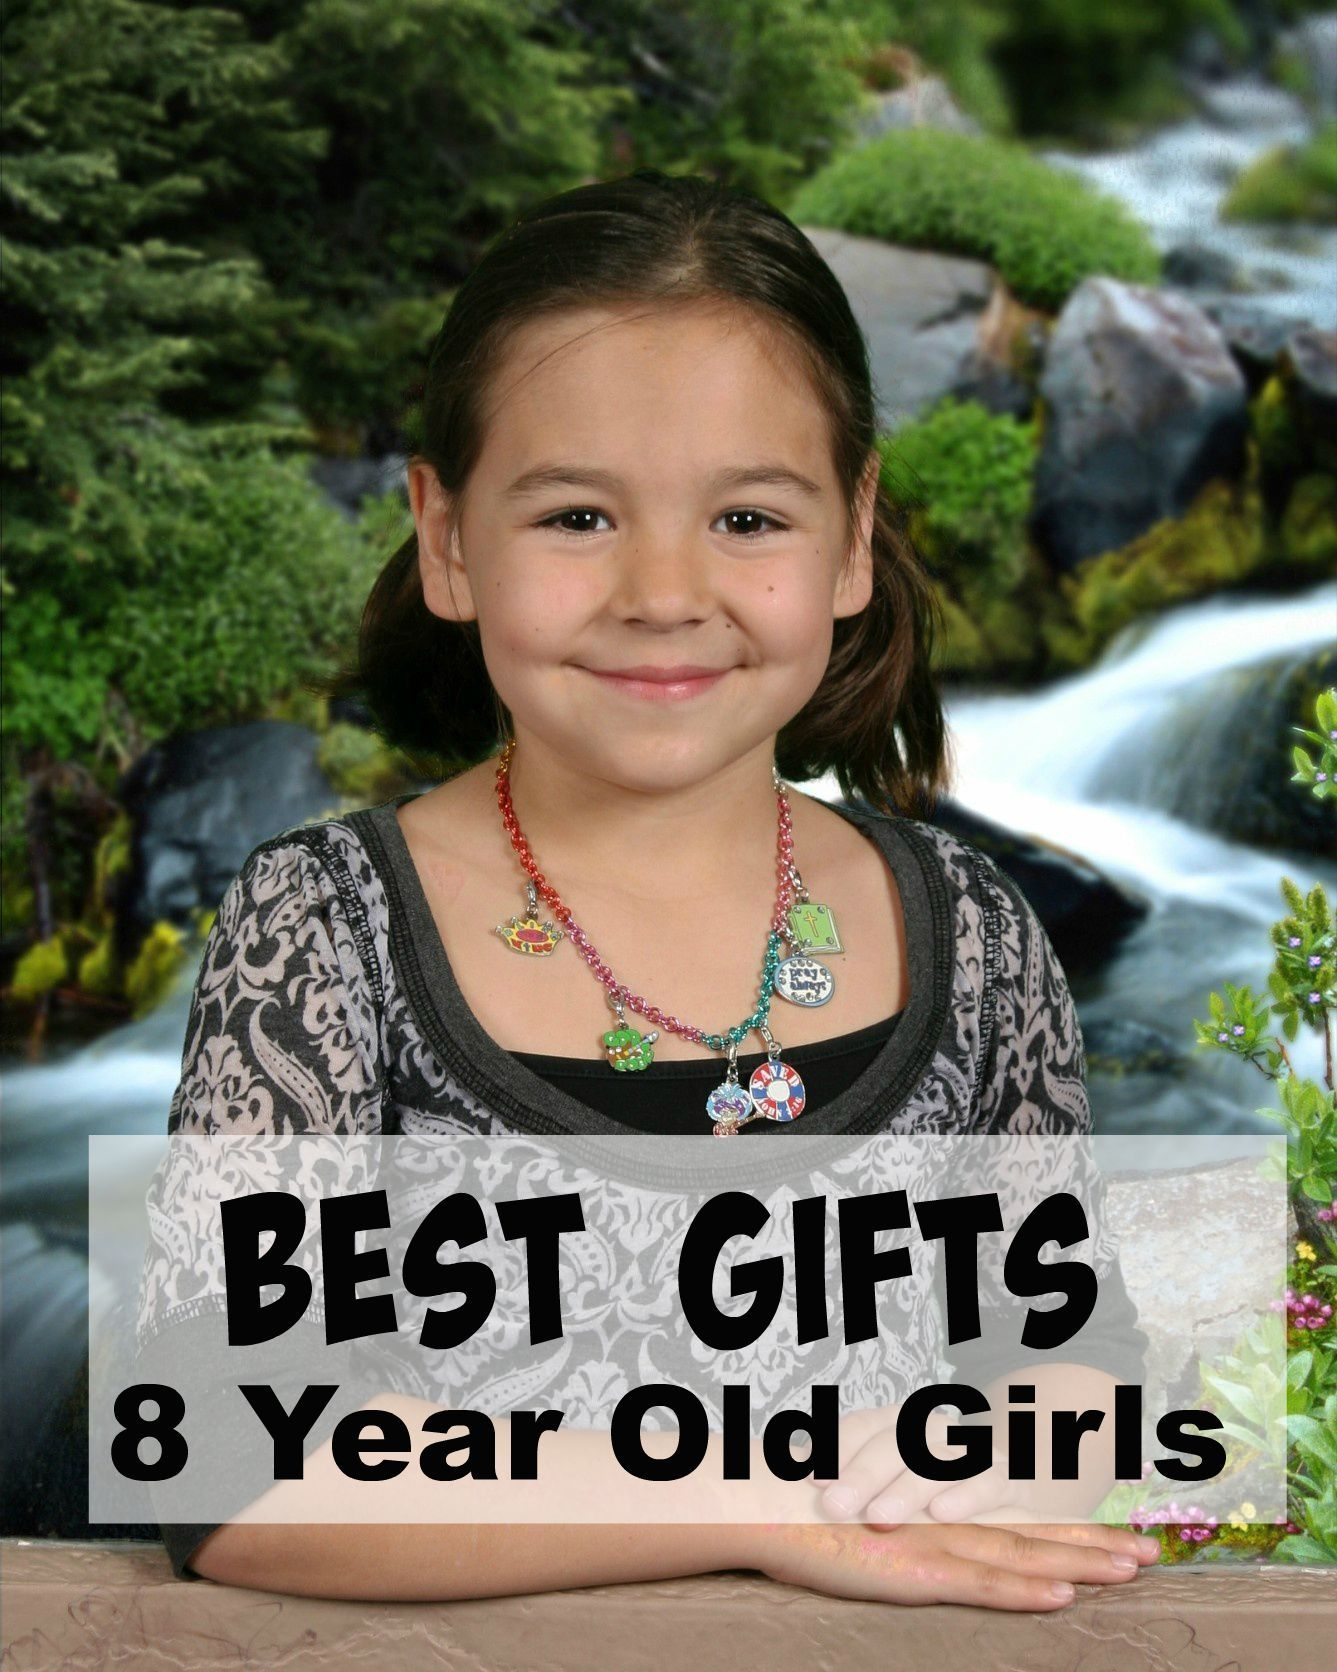 Best Gifts & Top Toys for 7 Year old Girls in 2015 Christmas